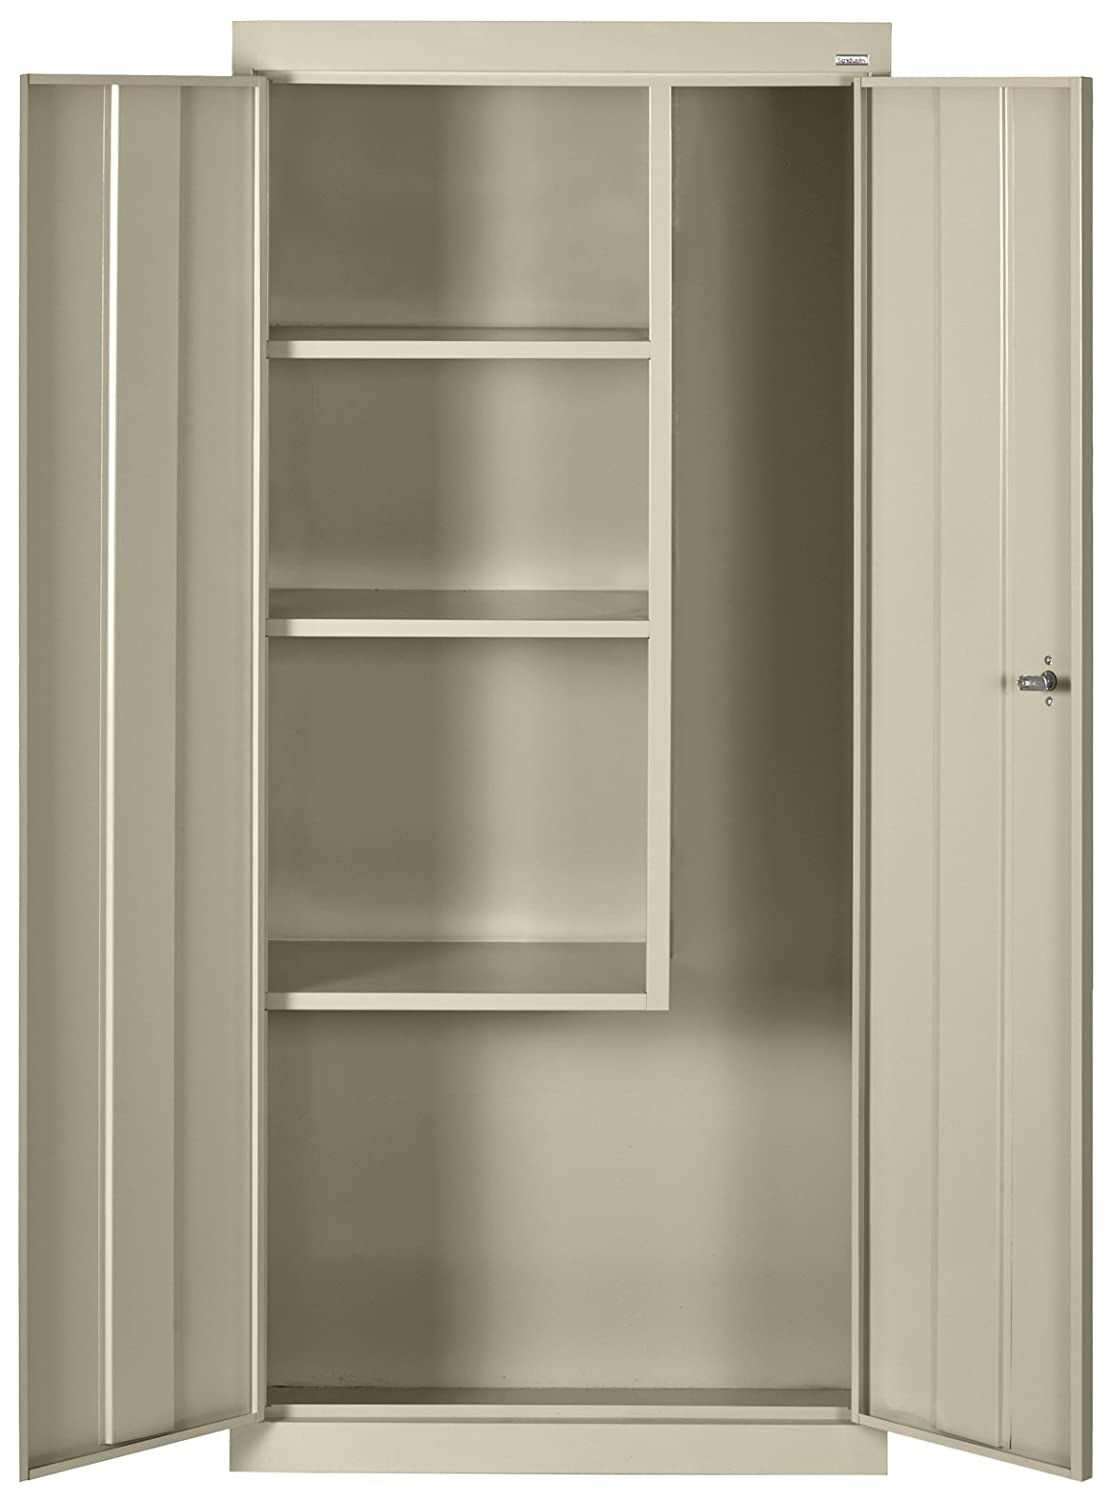 "Sandusky Lee VFC1301566-07 Putty Steel Janitorial/Supply Cabinet, 3 Shelves, Cam Locking System, Powder Coat Finish, 66"" Height x 30"" Width x 15"" Depth"